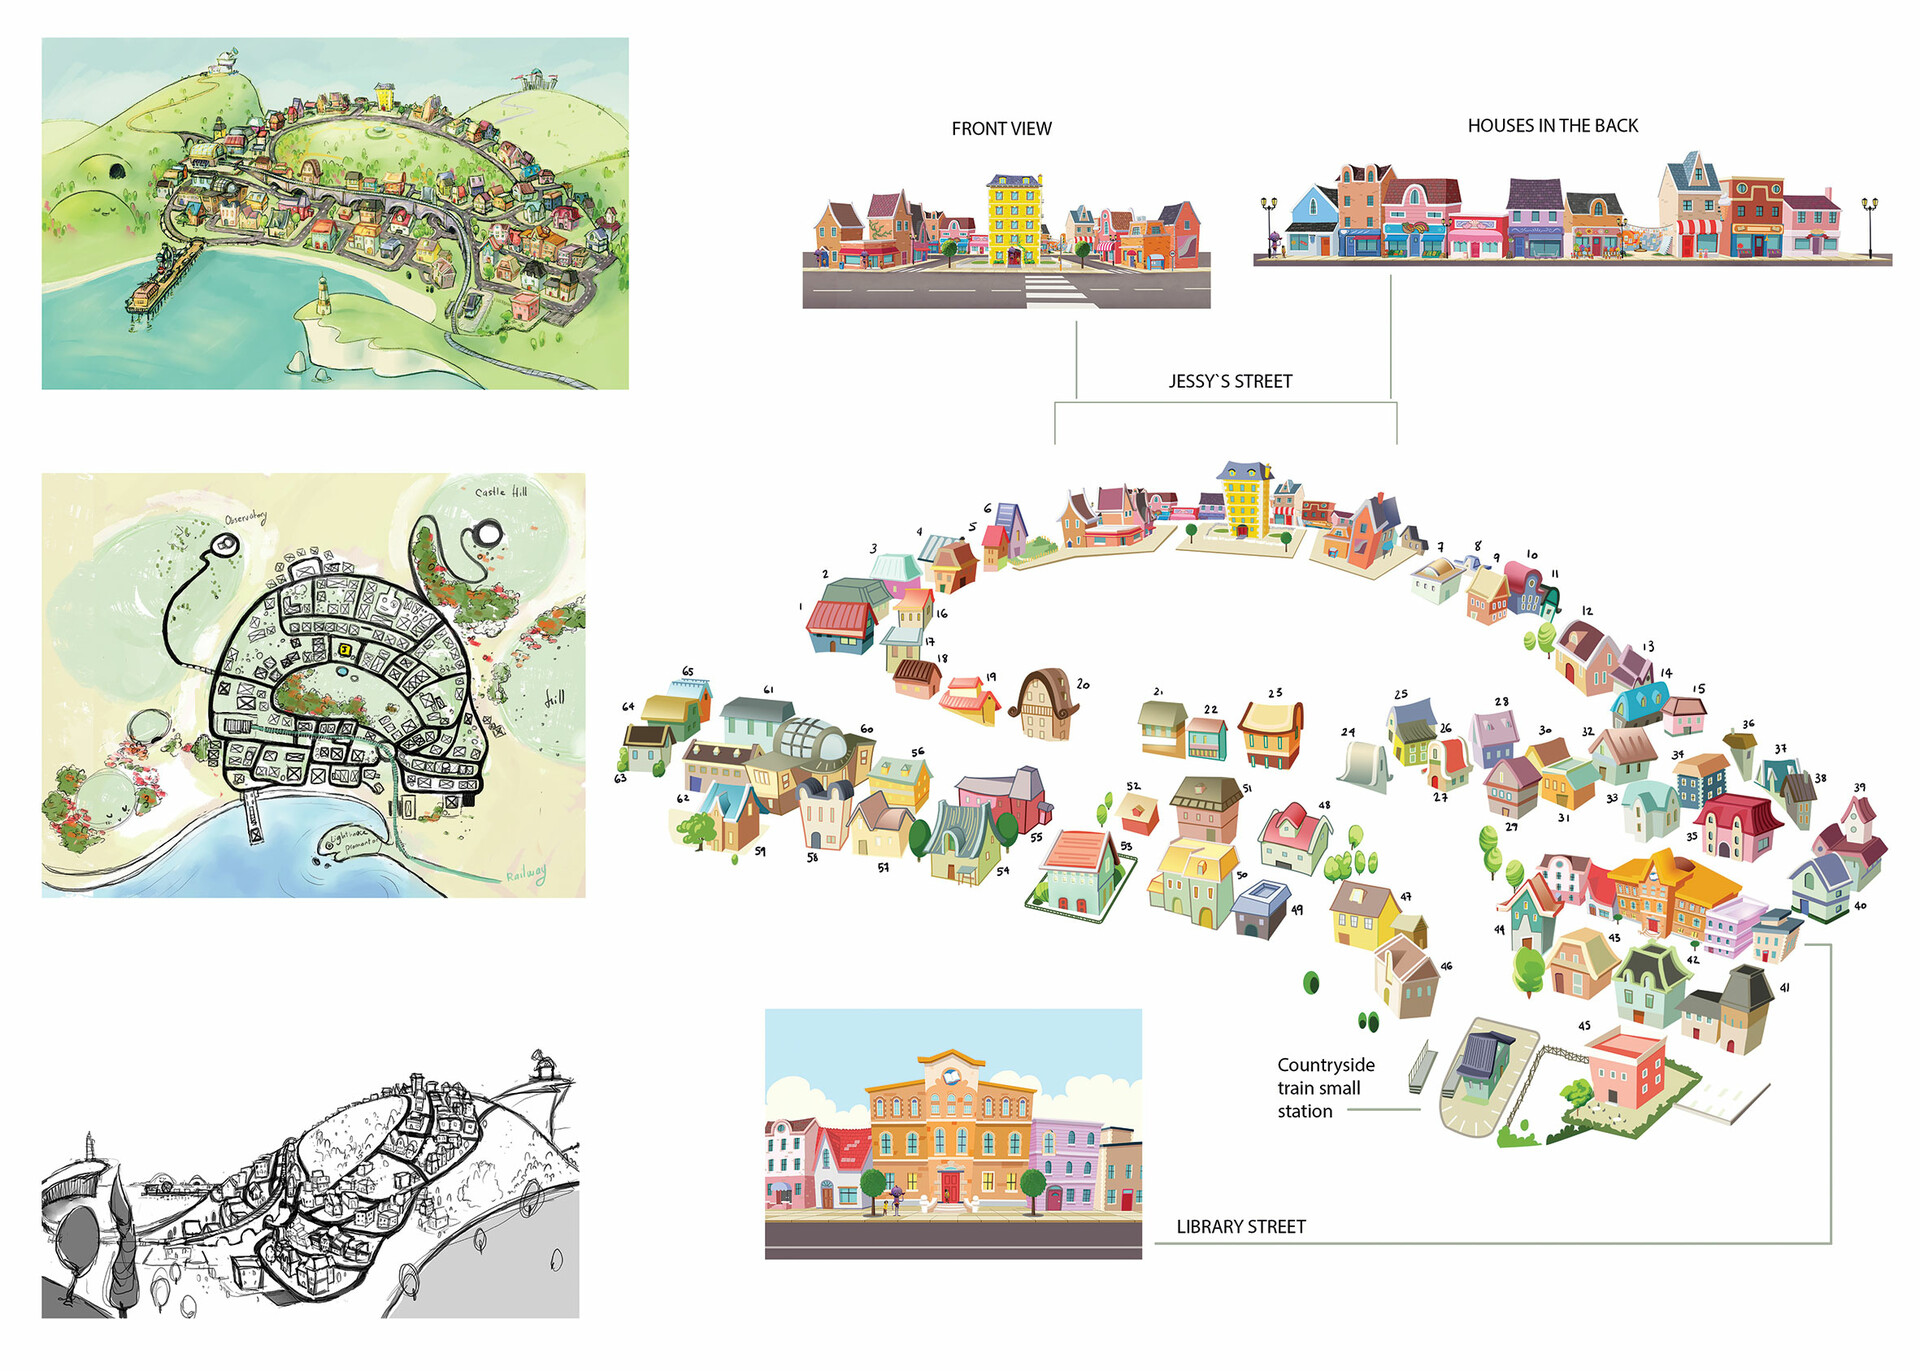 sketches of the town from different PoV and map of the buildings